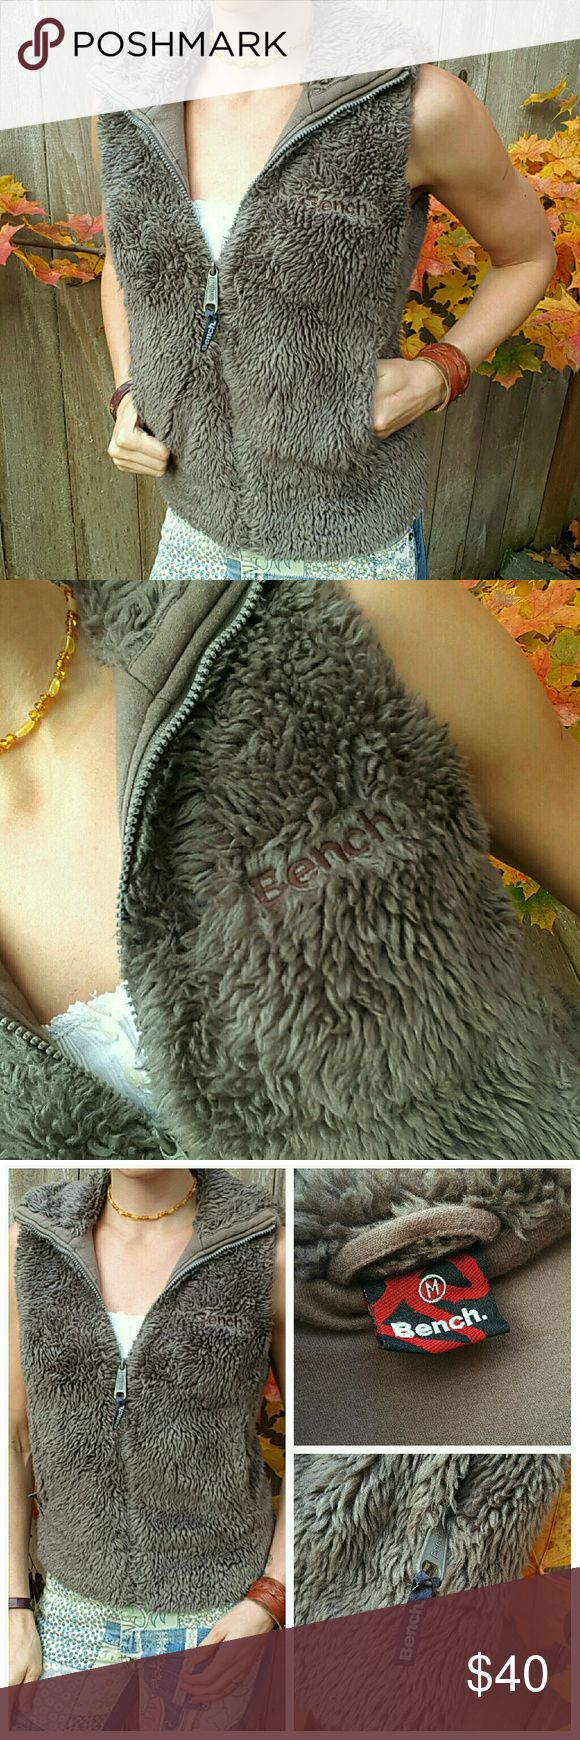 BENCH fuzzy vest Super cozy and warm! Zip pockets! Bench Jackets & Coats Vests